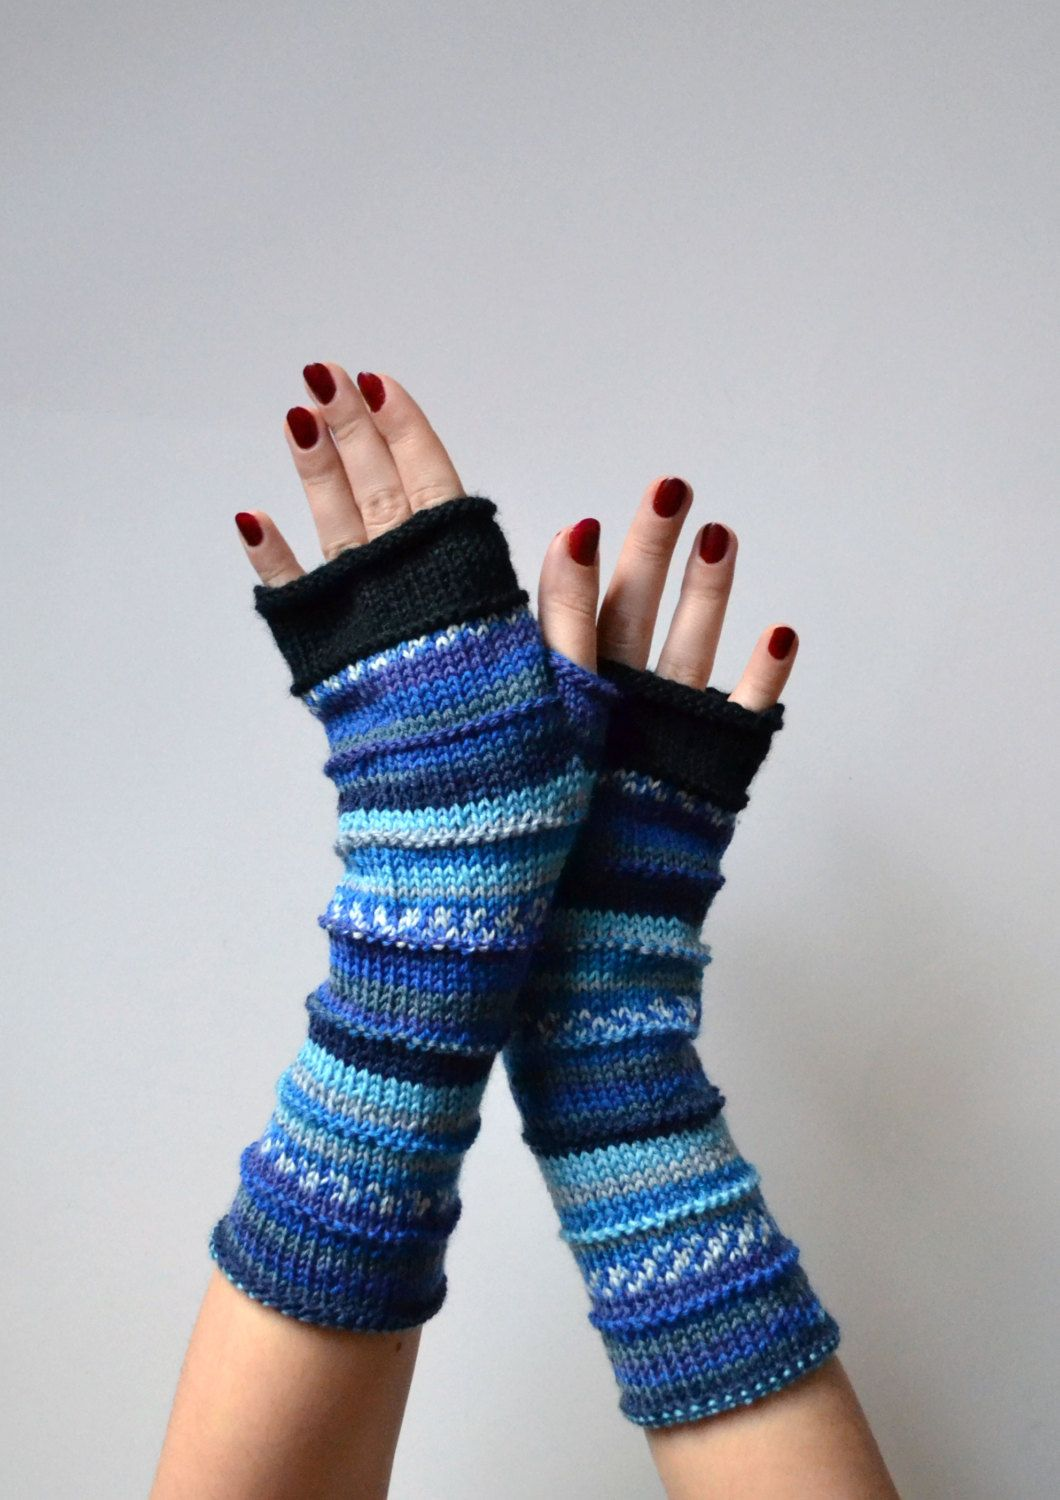 These fingerless glovesare hand knit and feature a classic stripe pattern in a great color combination for fall.  Made from 100% merino wool, their naturally insulate properties will keep you toasty in the cooler months!  Fingerless gloves offer you the best of both worlds: frostbite-free hands without the bulk of traditional gloves. Theyre perfect for typing, driving, crafting, or whatever the case may be!   Colors: Black White Blue Navy blue   The gloves are very soft and cozy. They are 9…